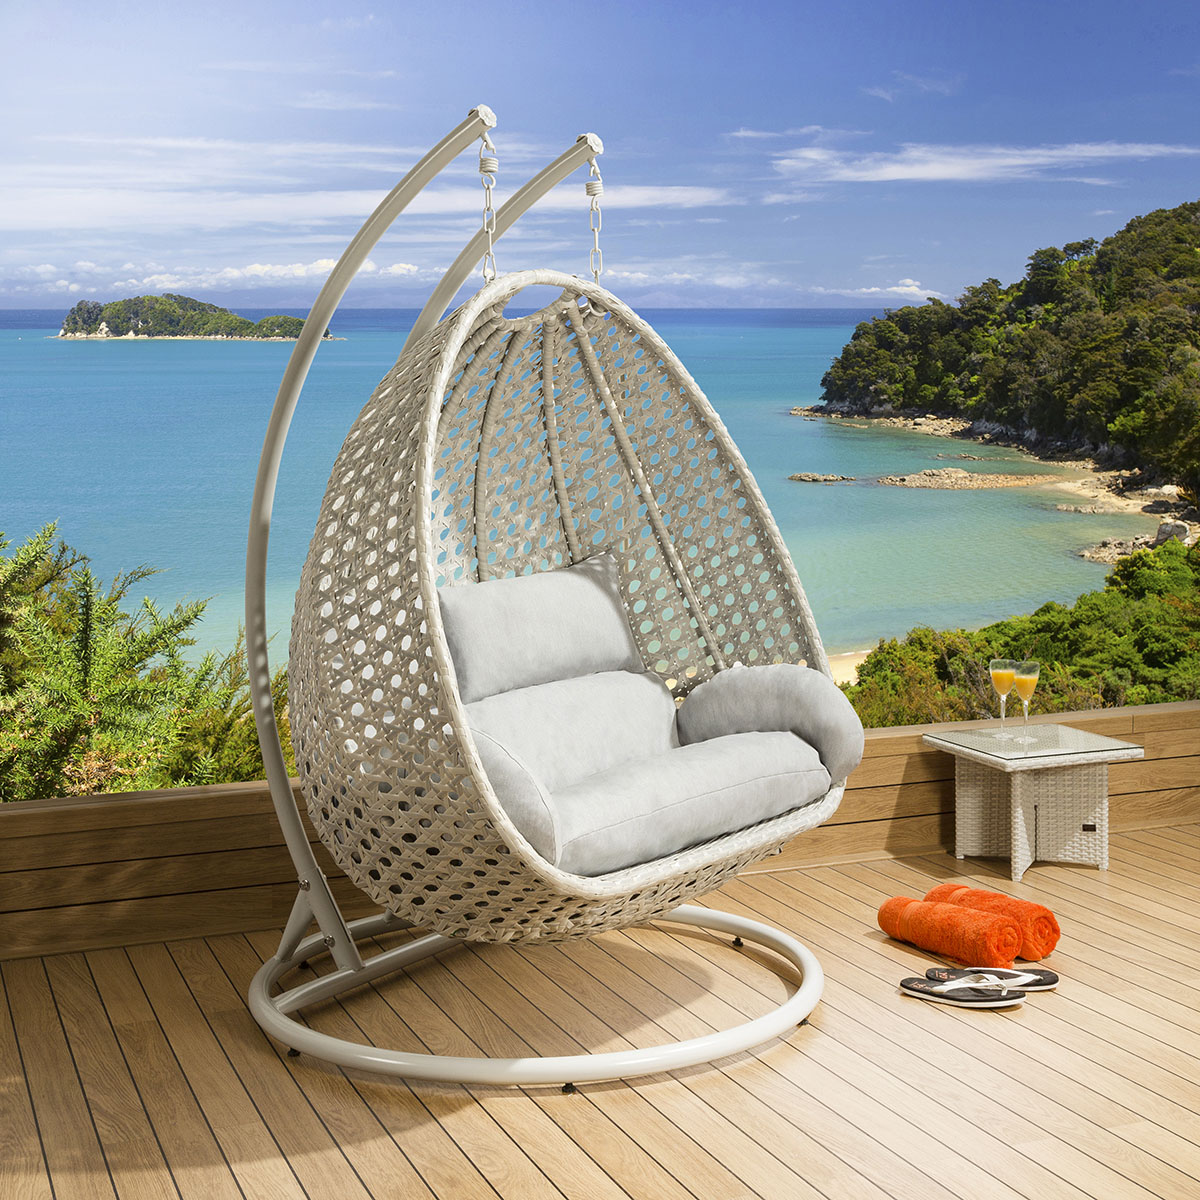 Luxury Outdoor 2 Person Garden Pod Hanging Chair Swing